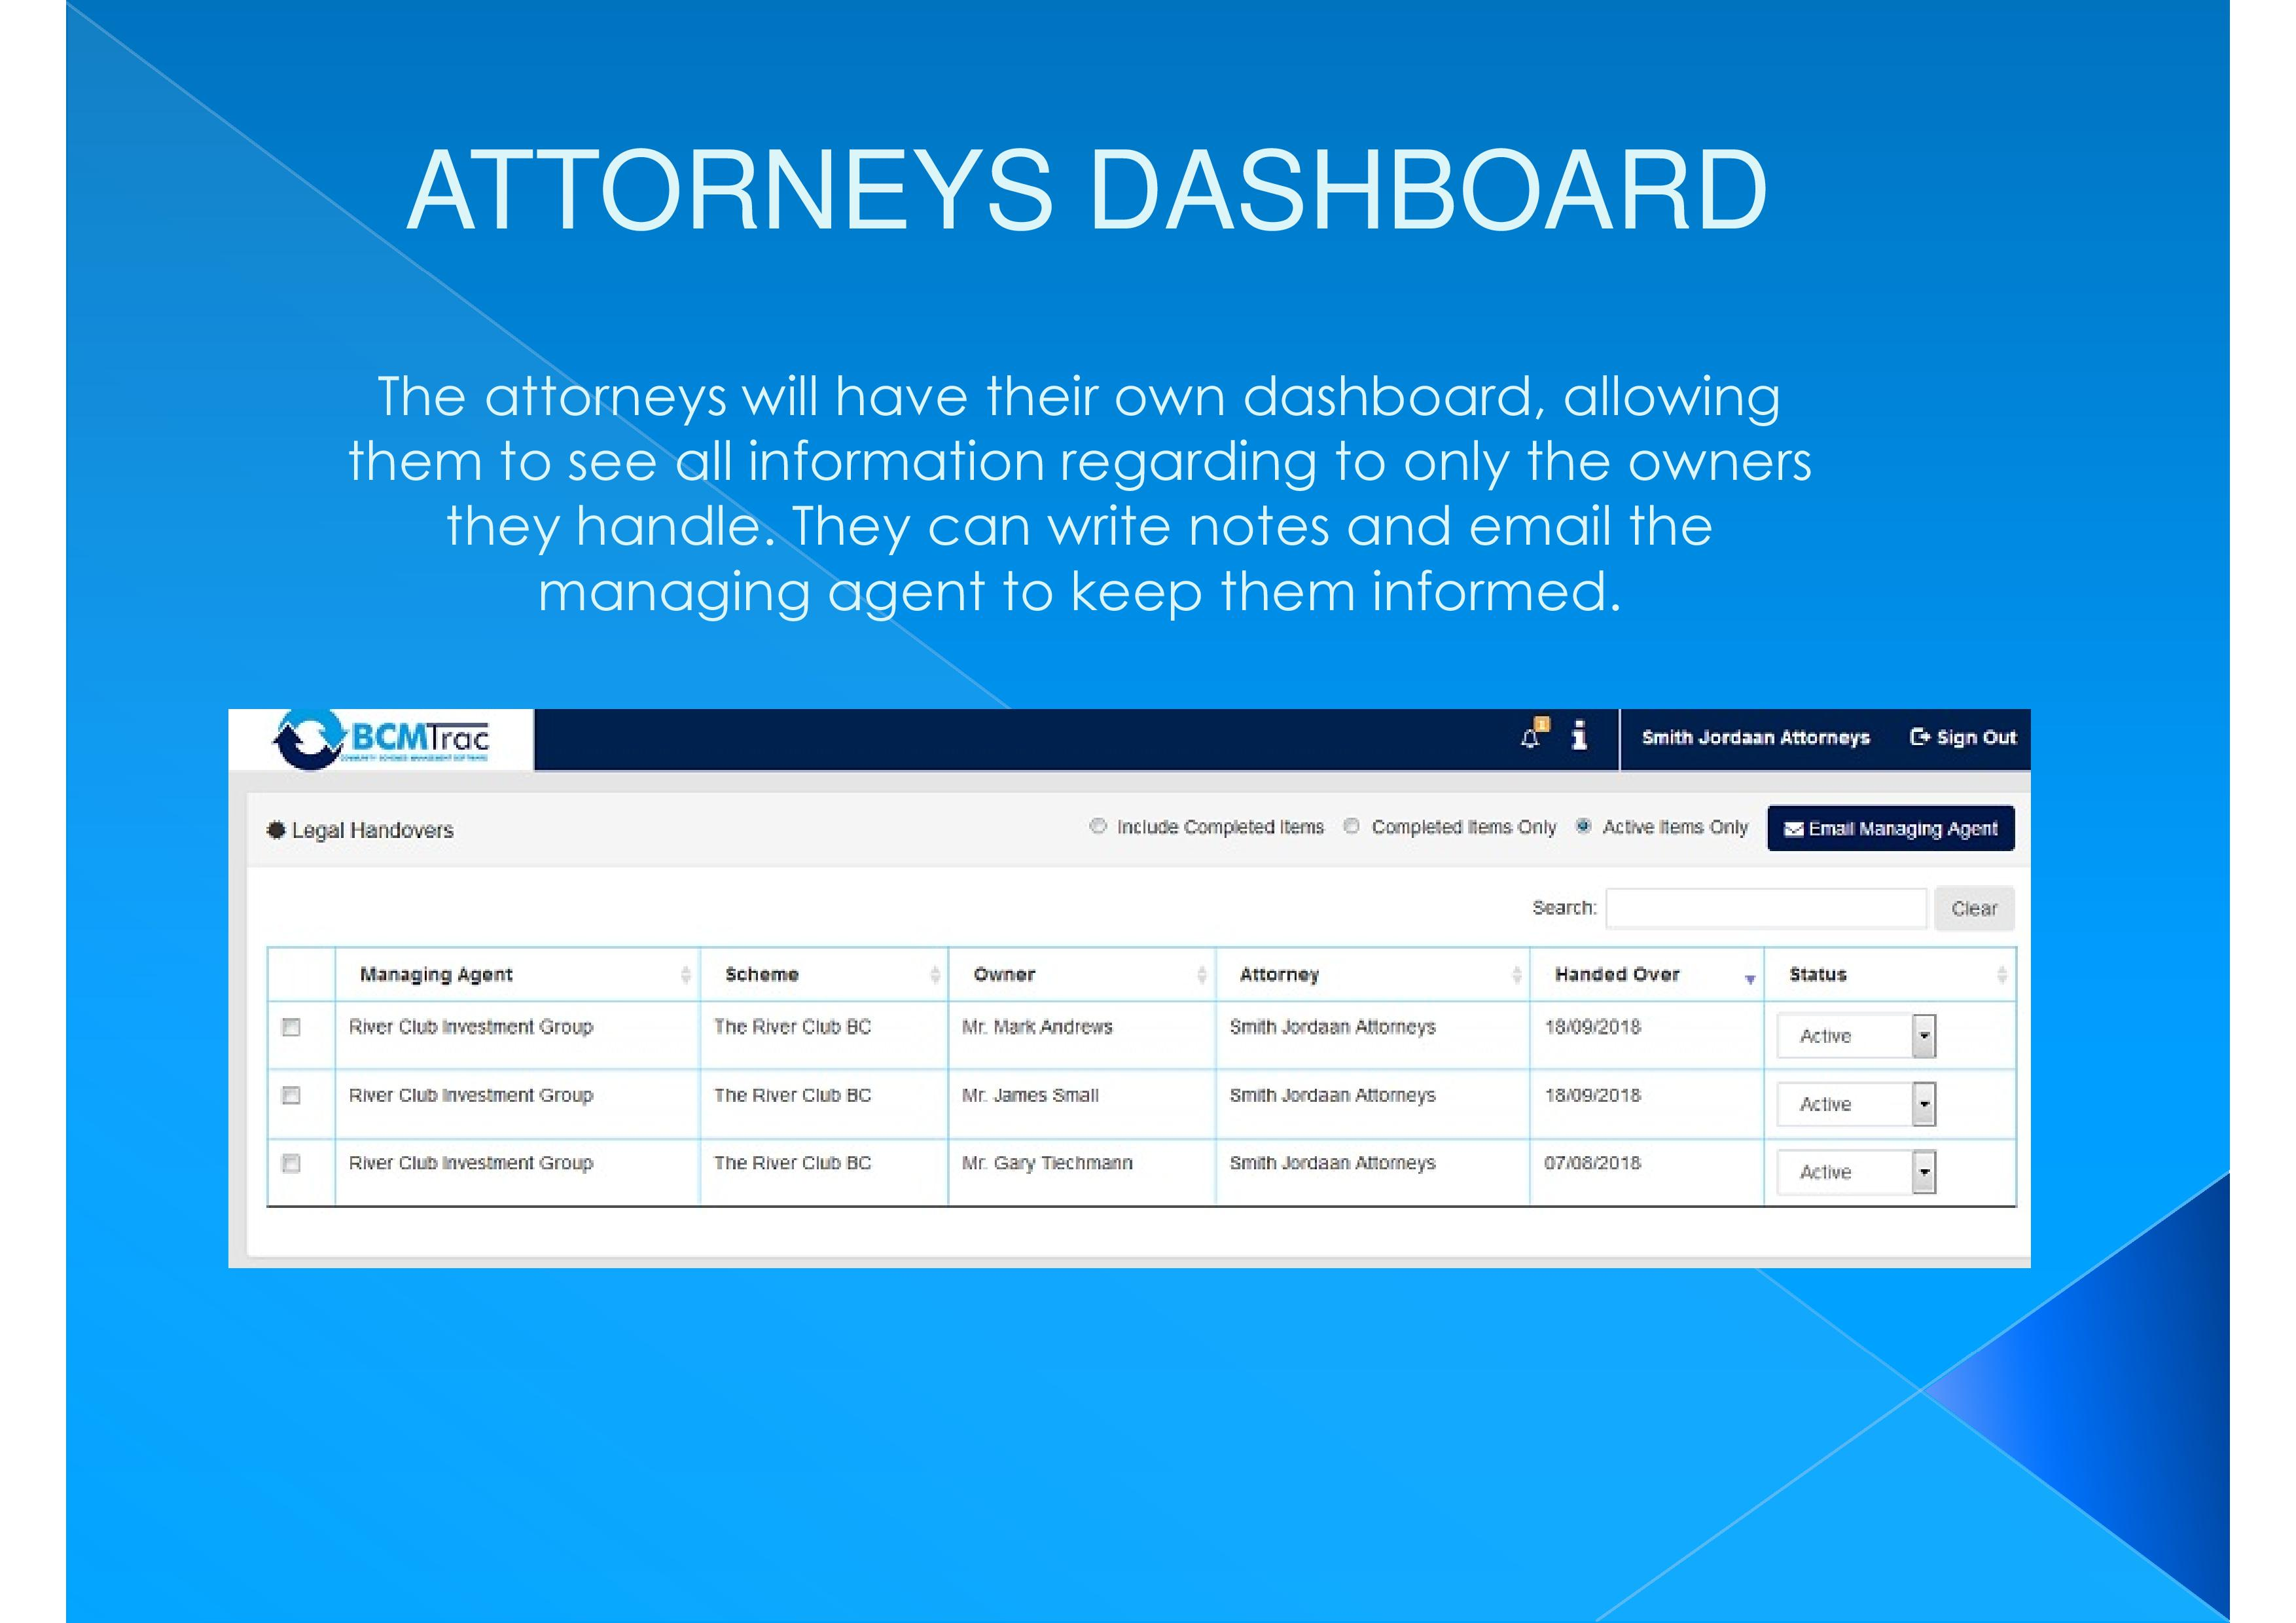 Attorneys can be given access to view and edit the information online.